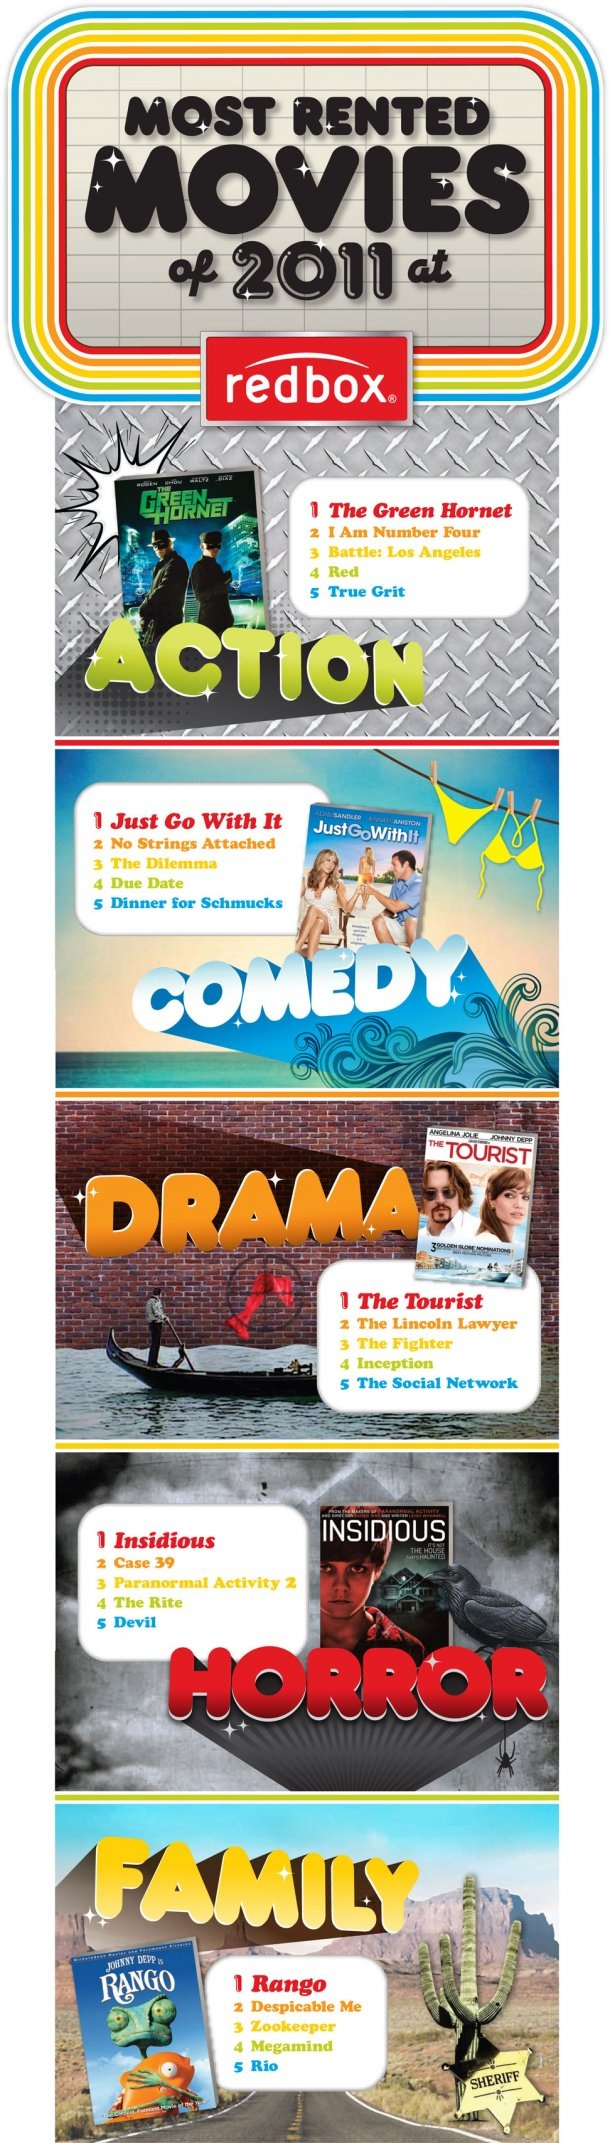 Most Rented Movies Of 2011 At Redbox[INFOGRAPHIC]